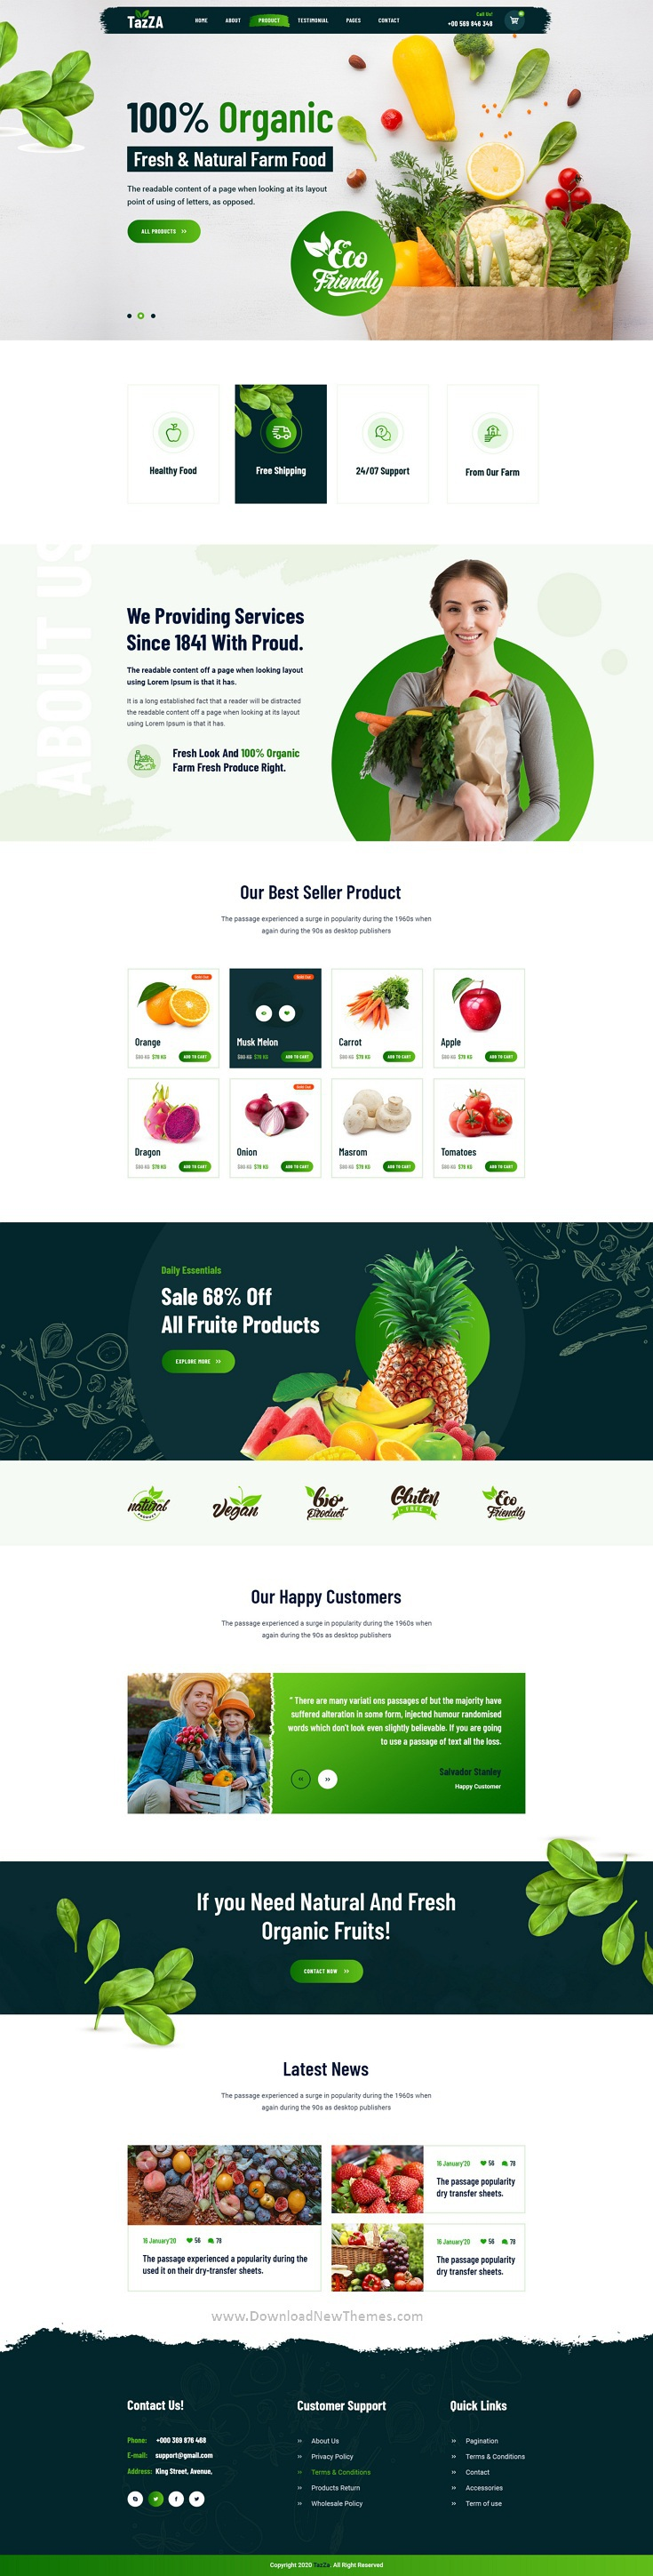 Organic Food Figma Template